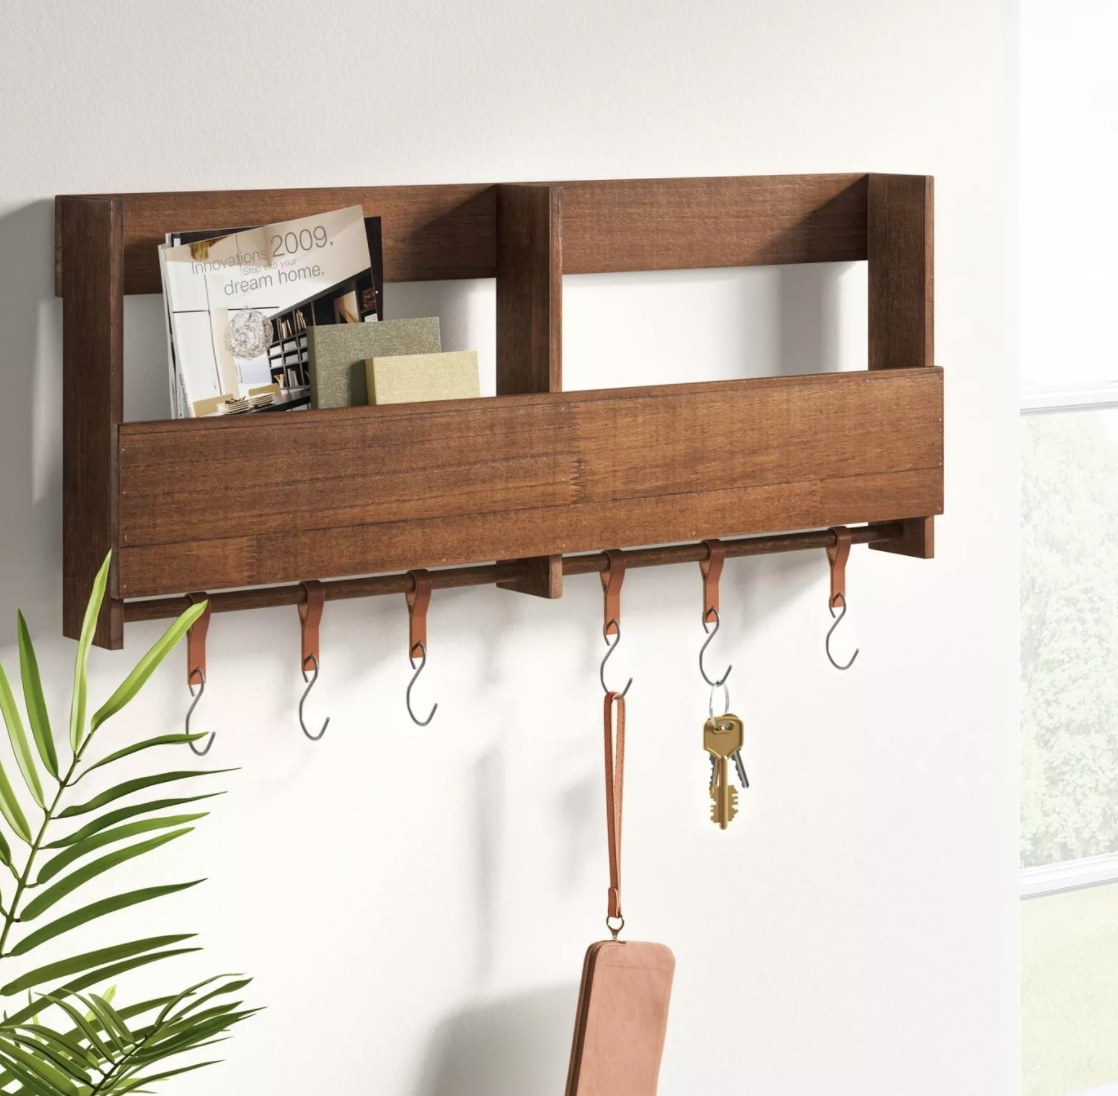 The brown wood entryway wall organizer